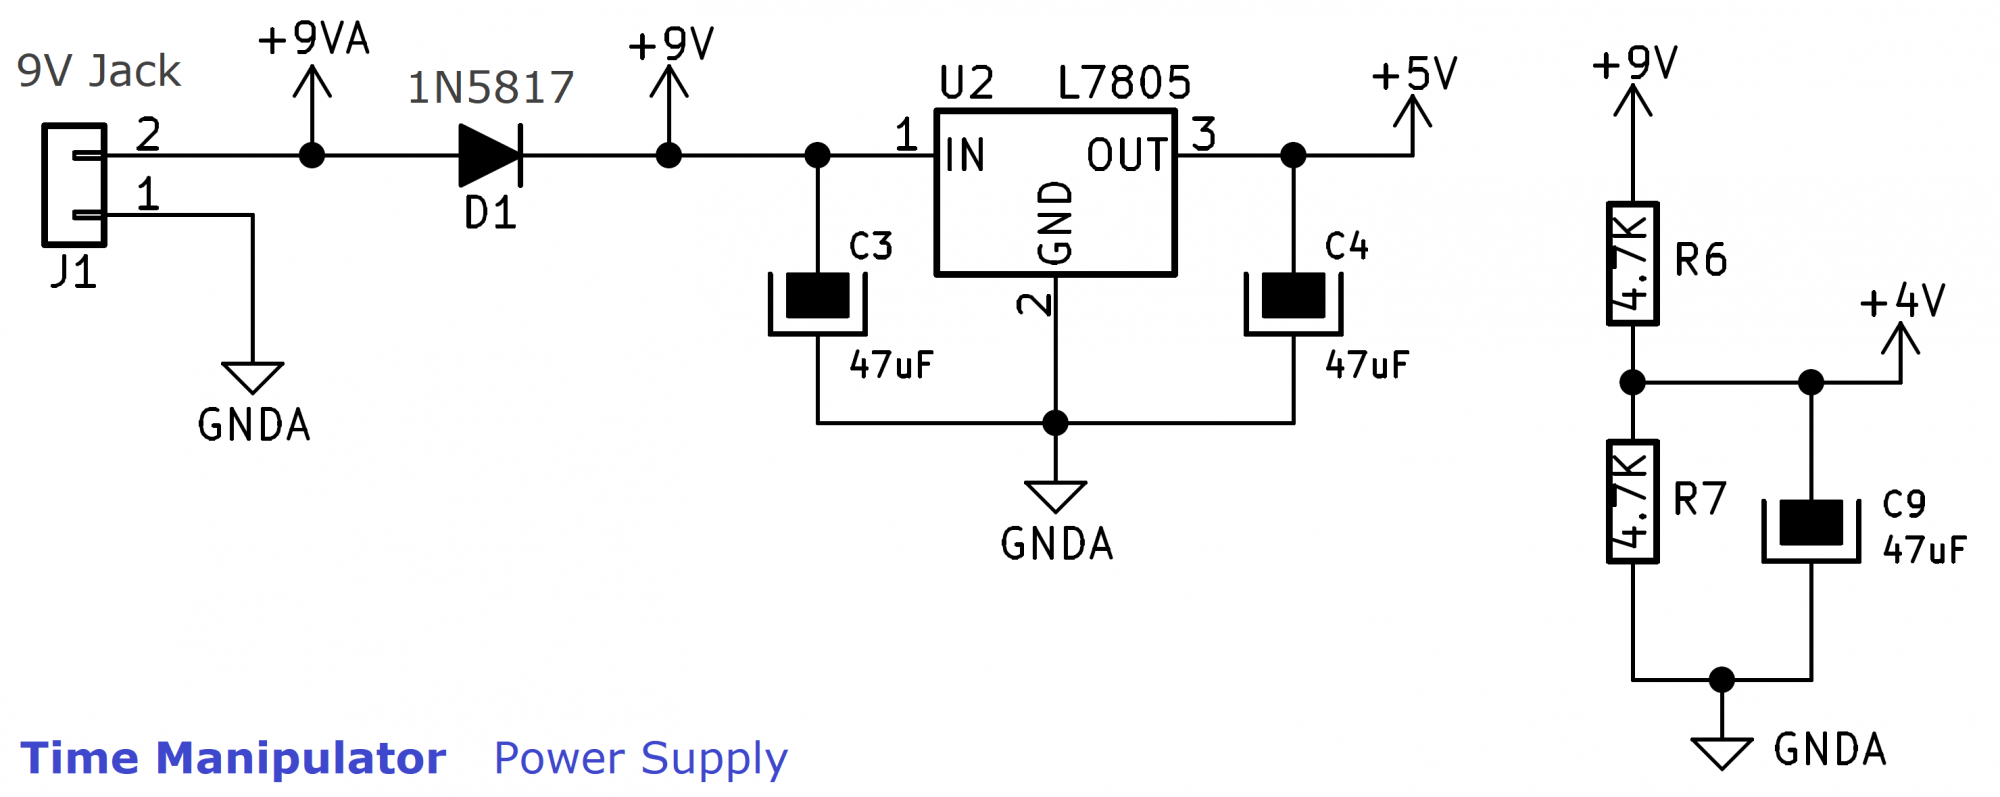 Time-Manipulator-Power-Supply.png